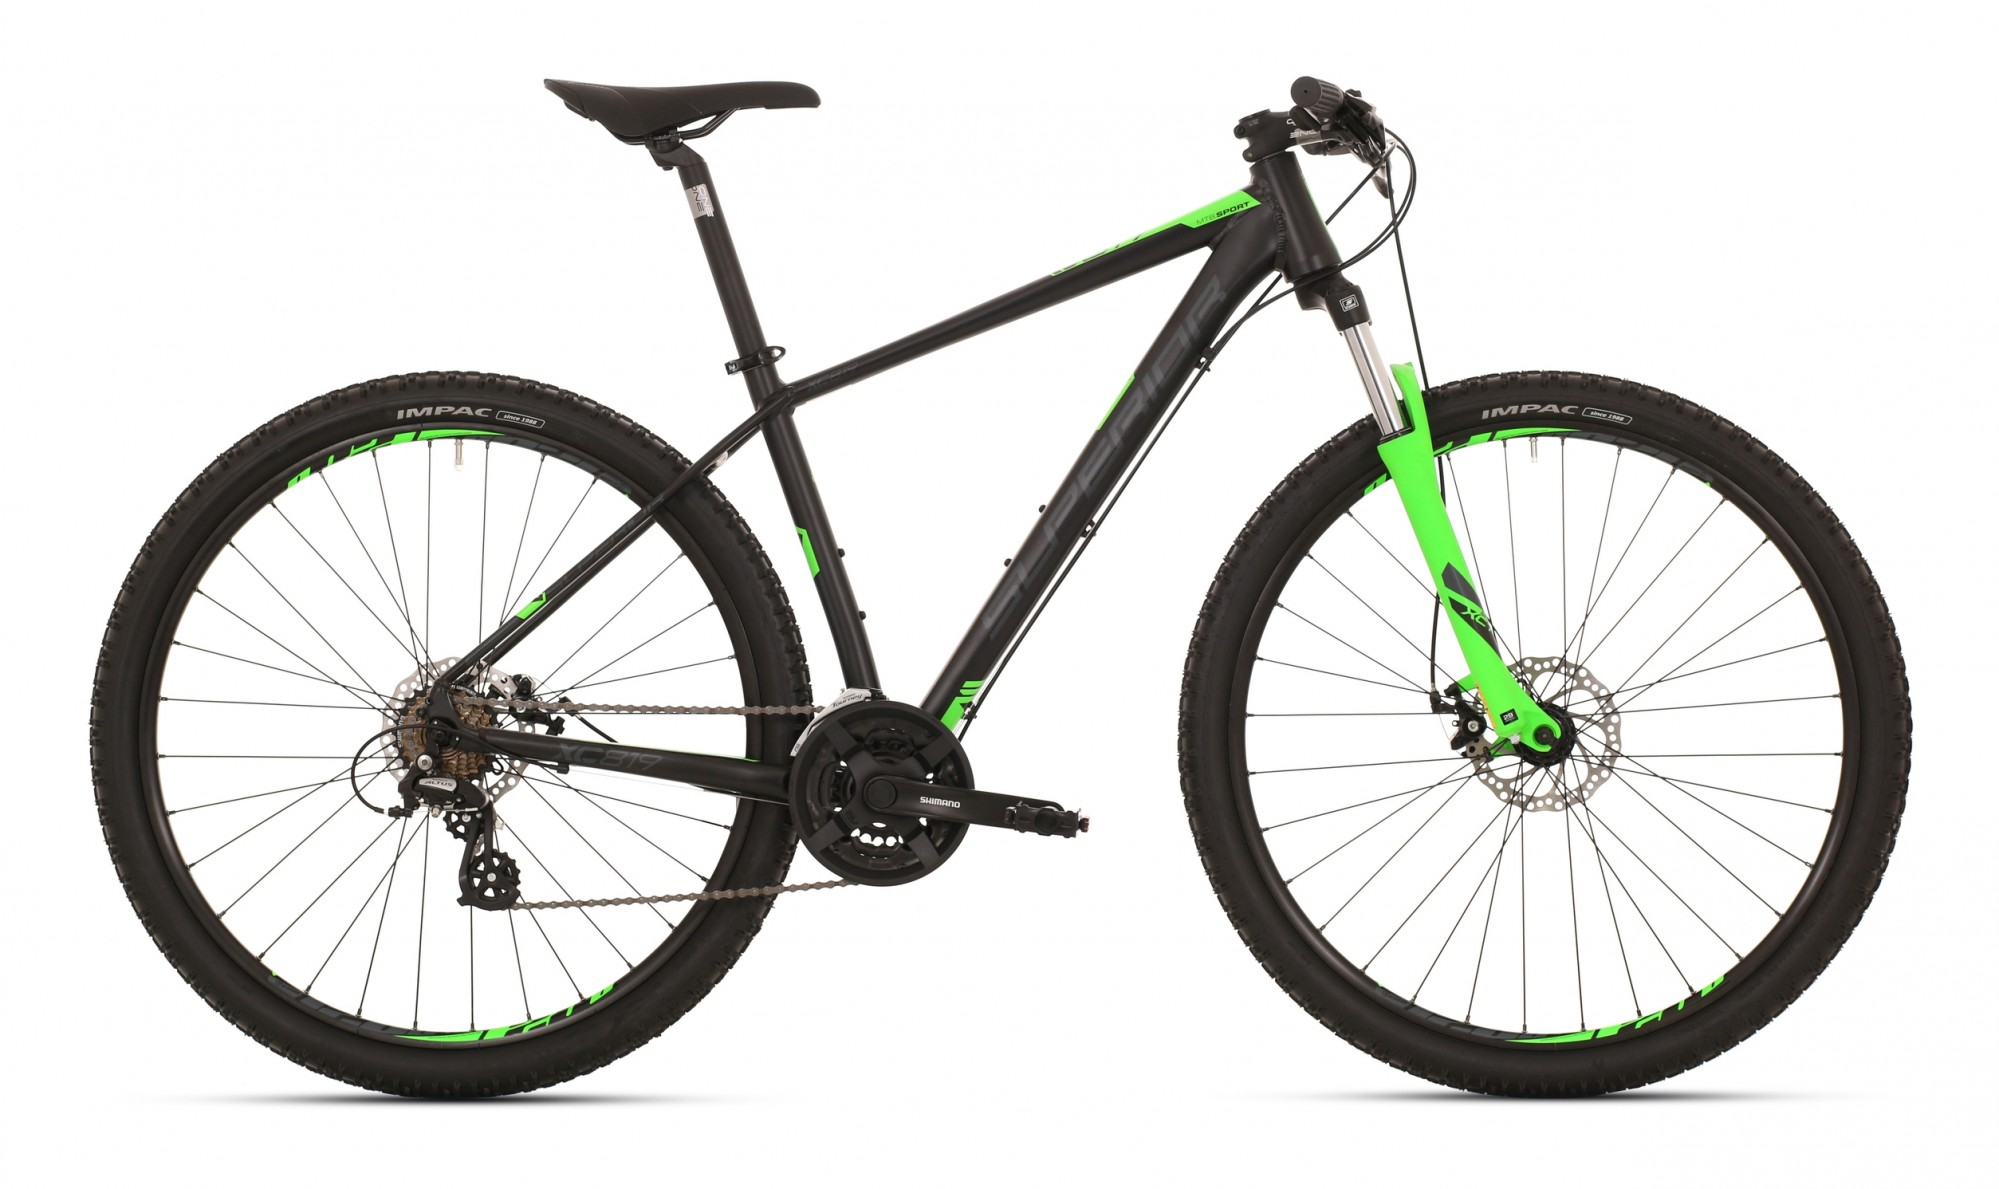 Superior XC 819 ALU Matte Black Neon Green 3x7